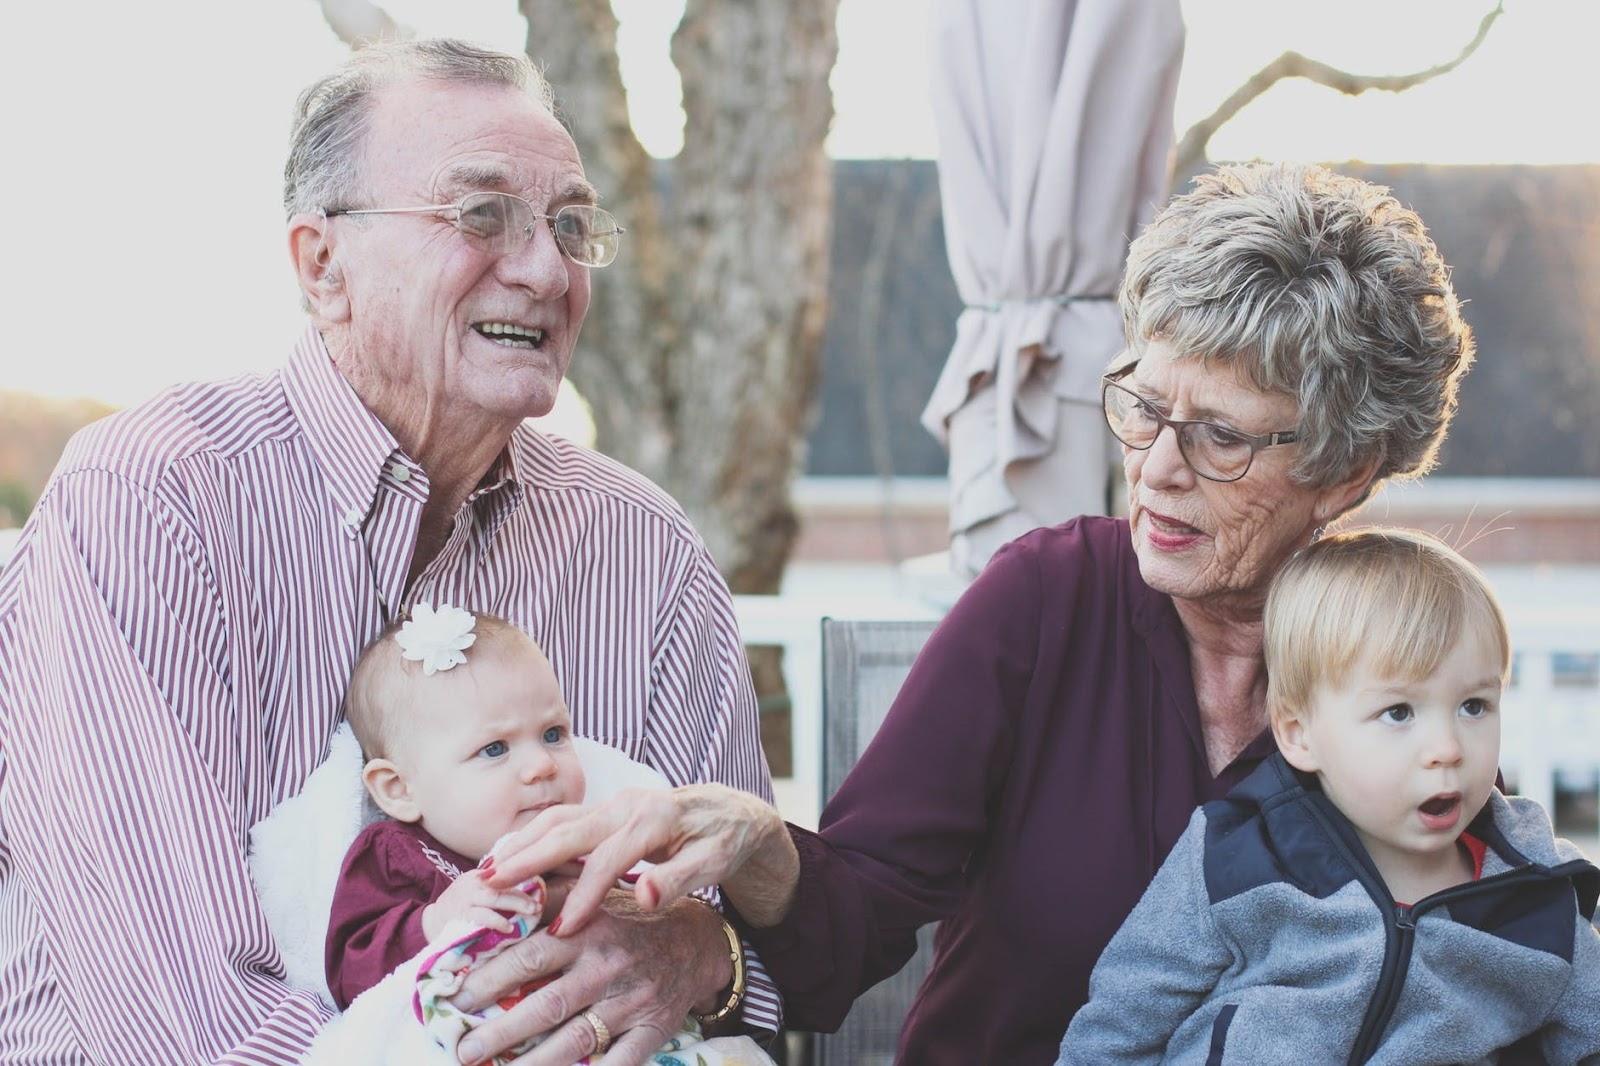 The Essential Guide To Taking Care Of Elderly Relatives